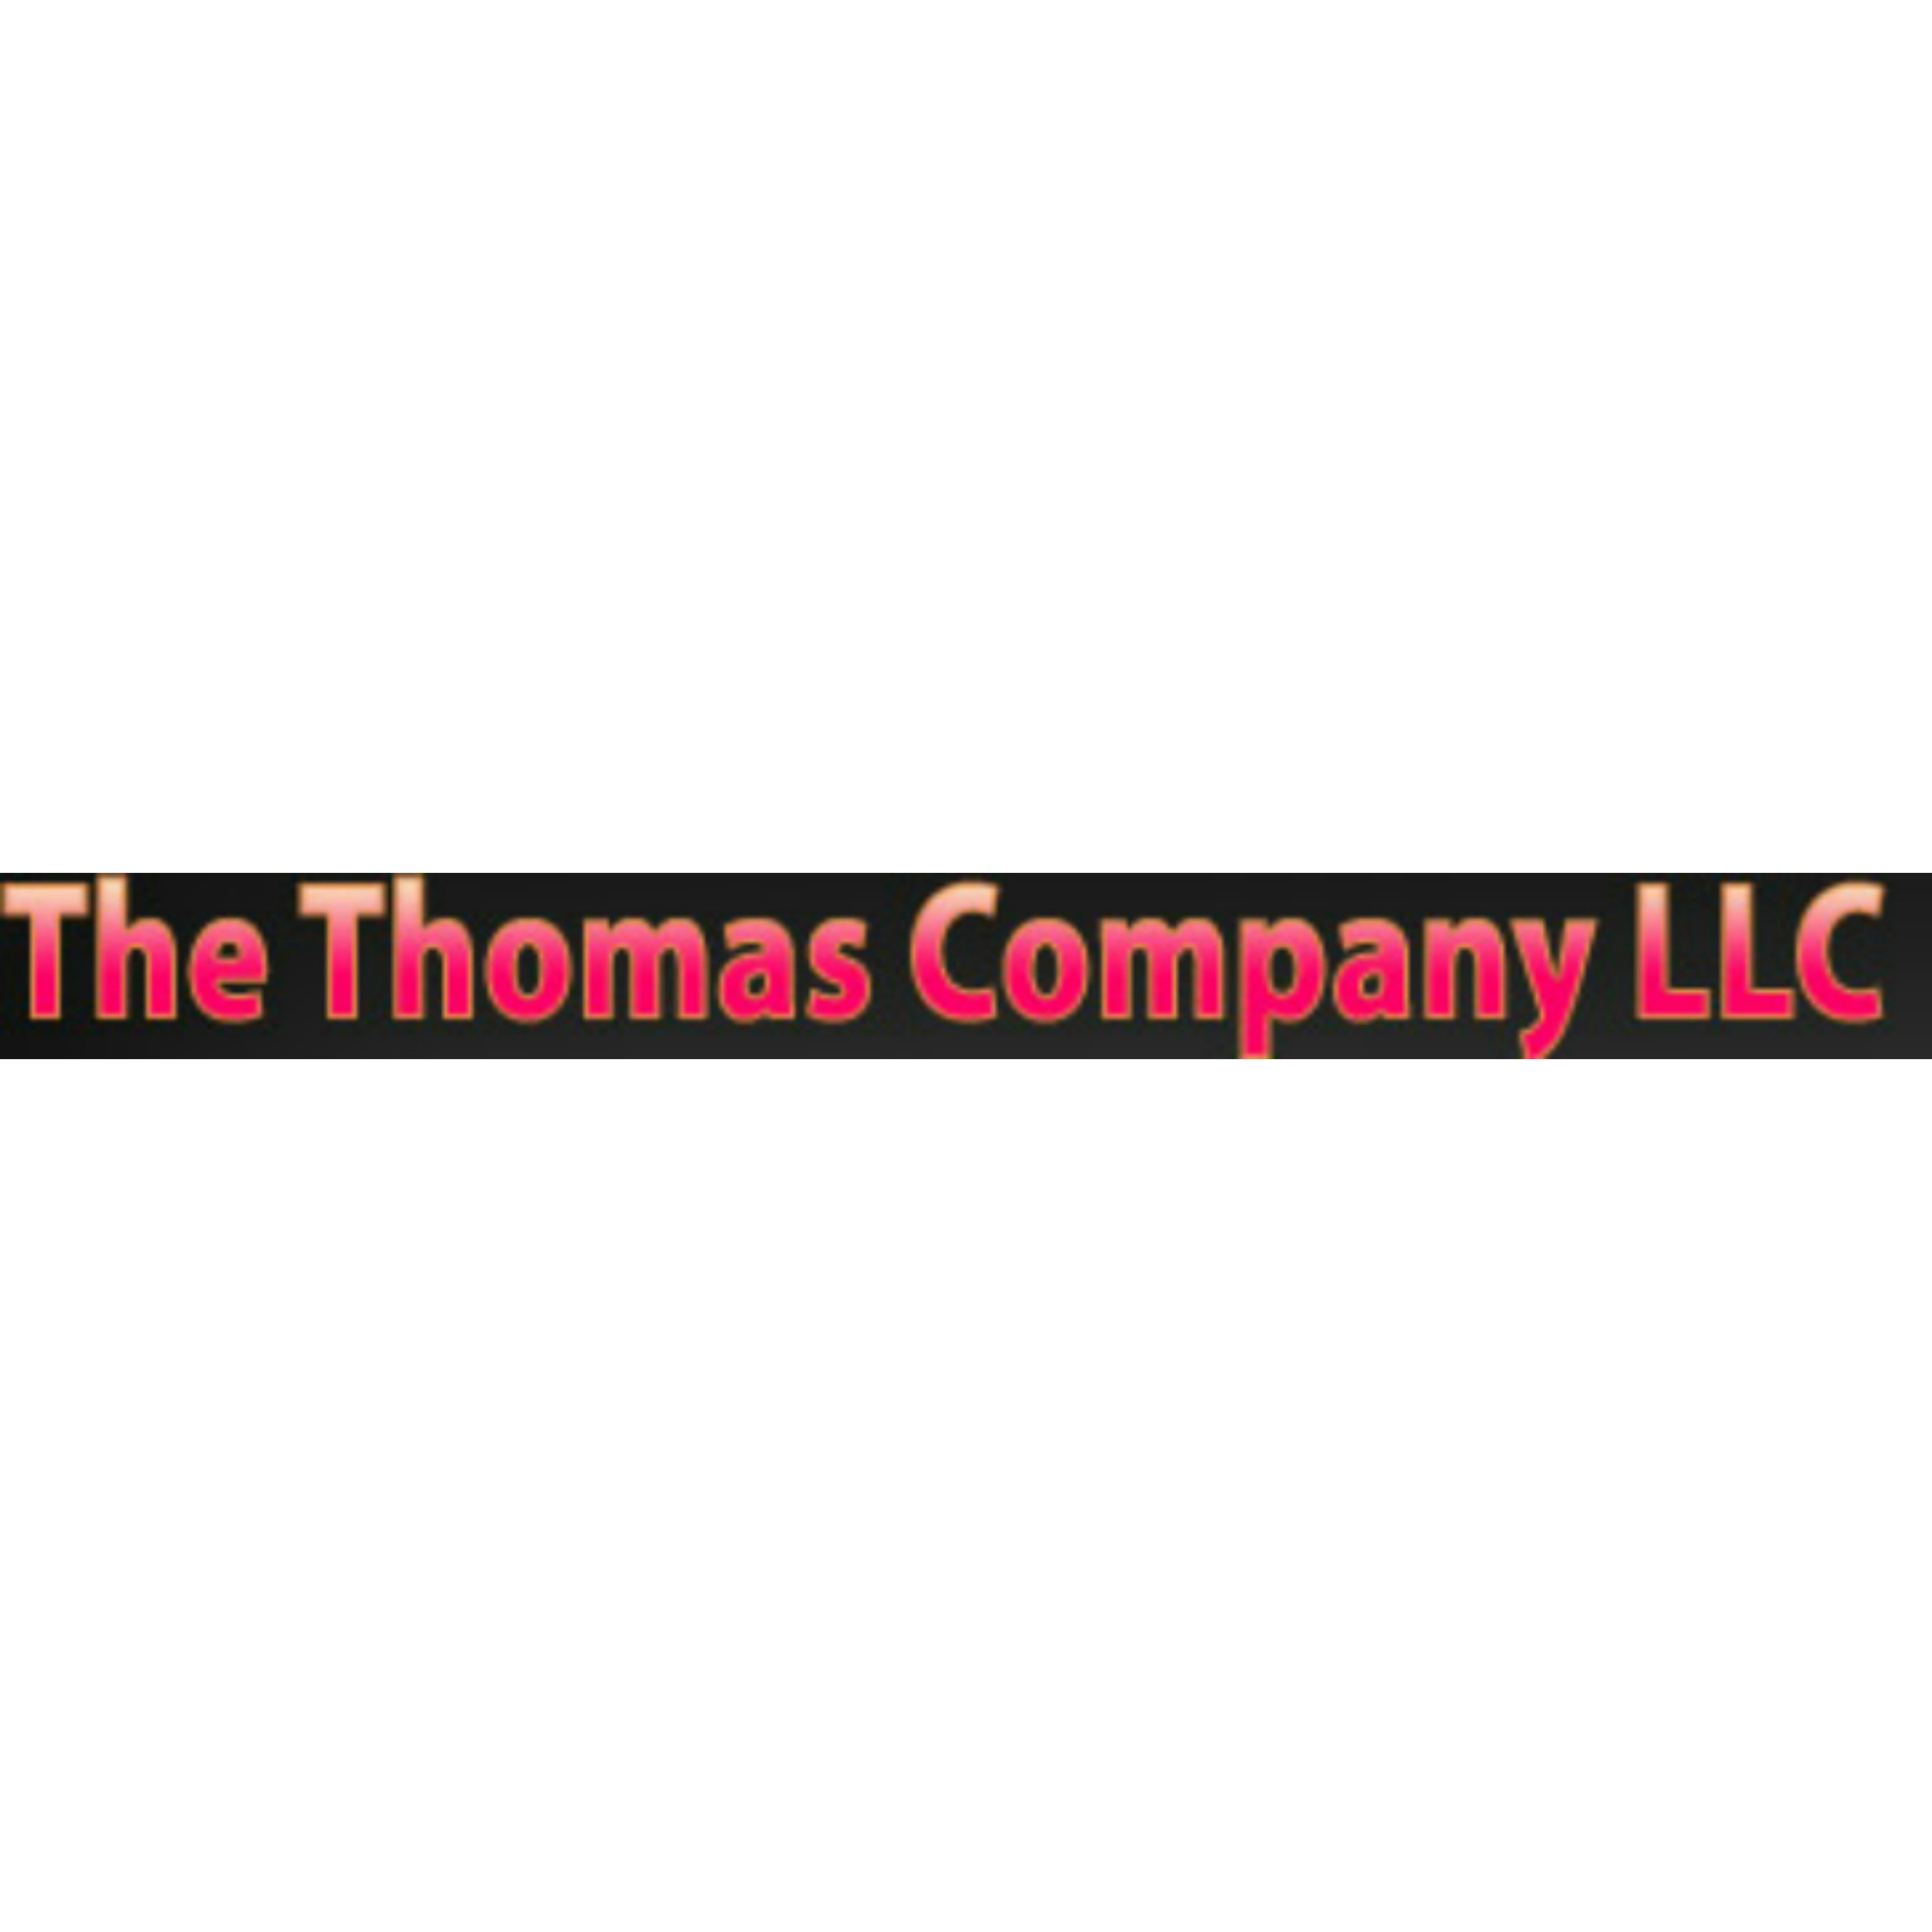 The Thomas Company LLC - Benton, LA - Electricians